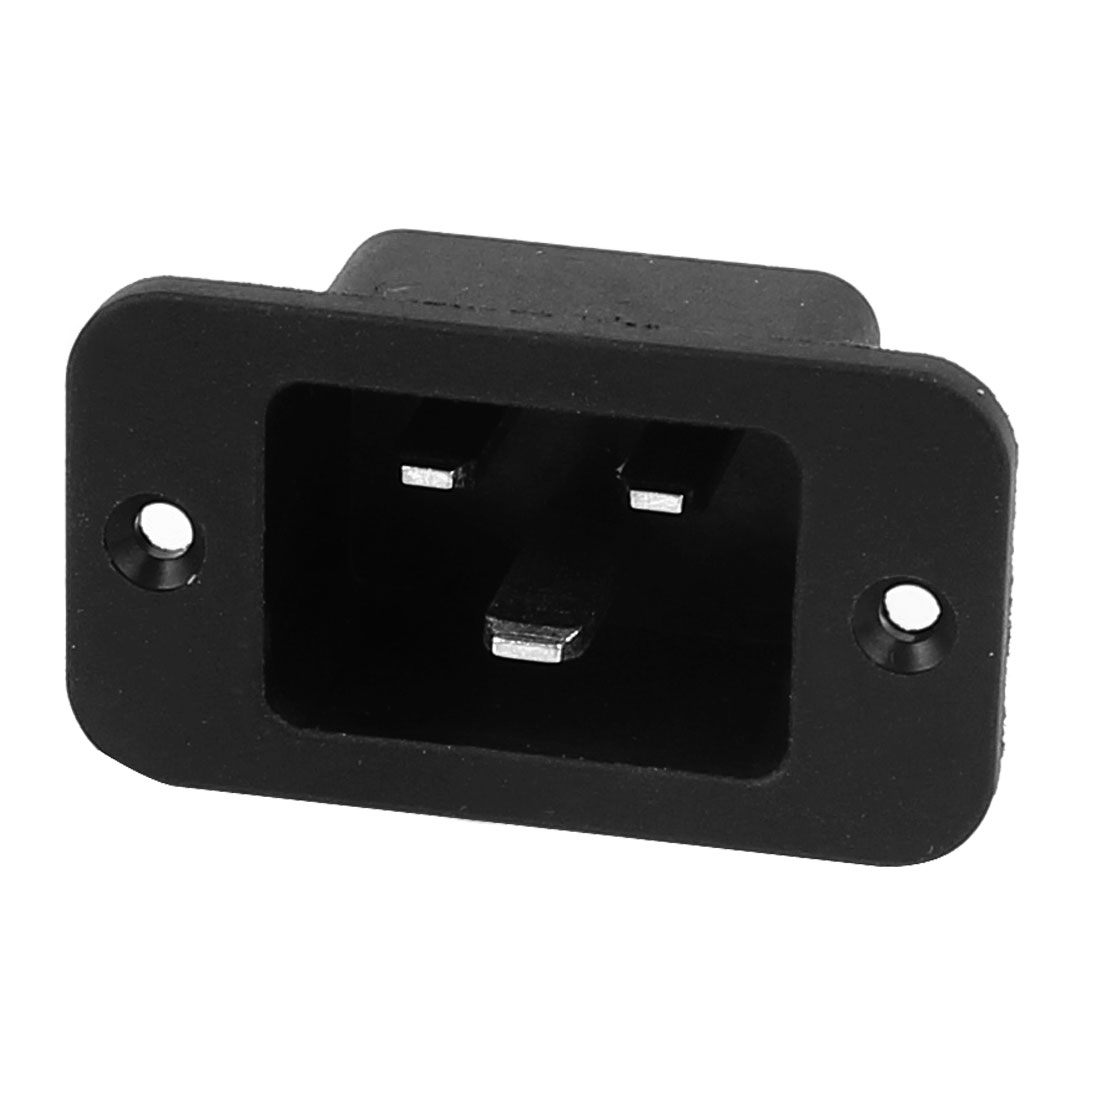 AC 250V 16A 3P IEC320 C14 Male Inlet Connector Power Socket Black